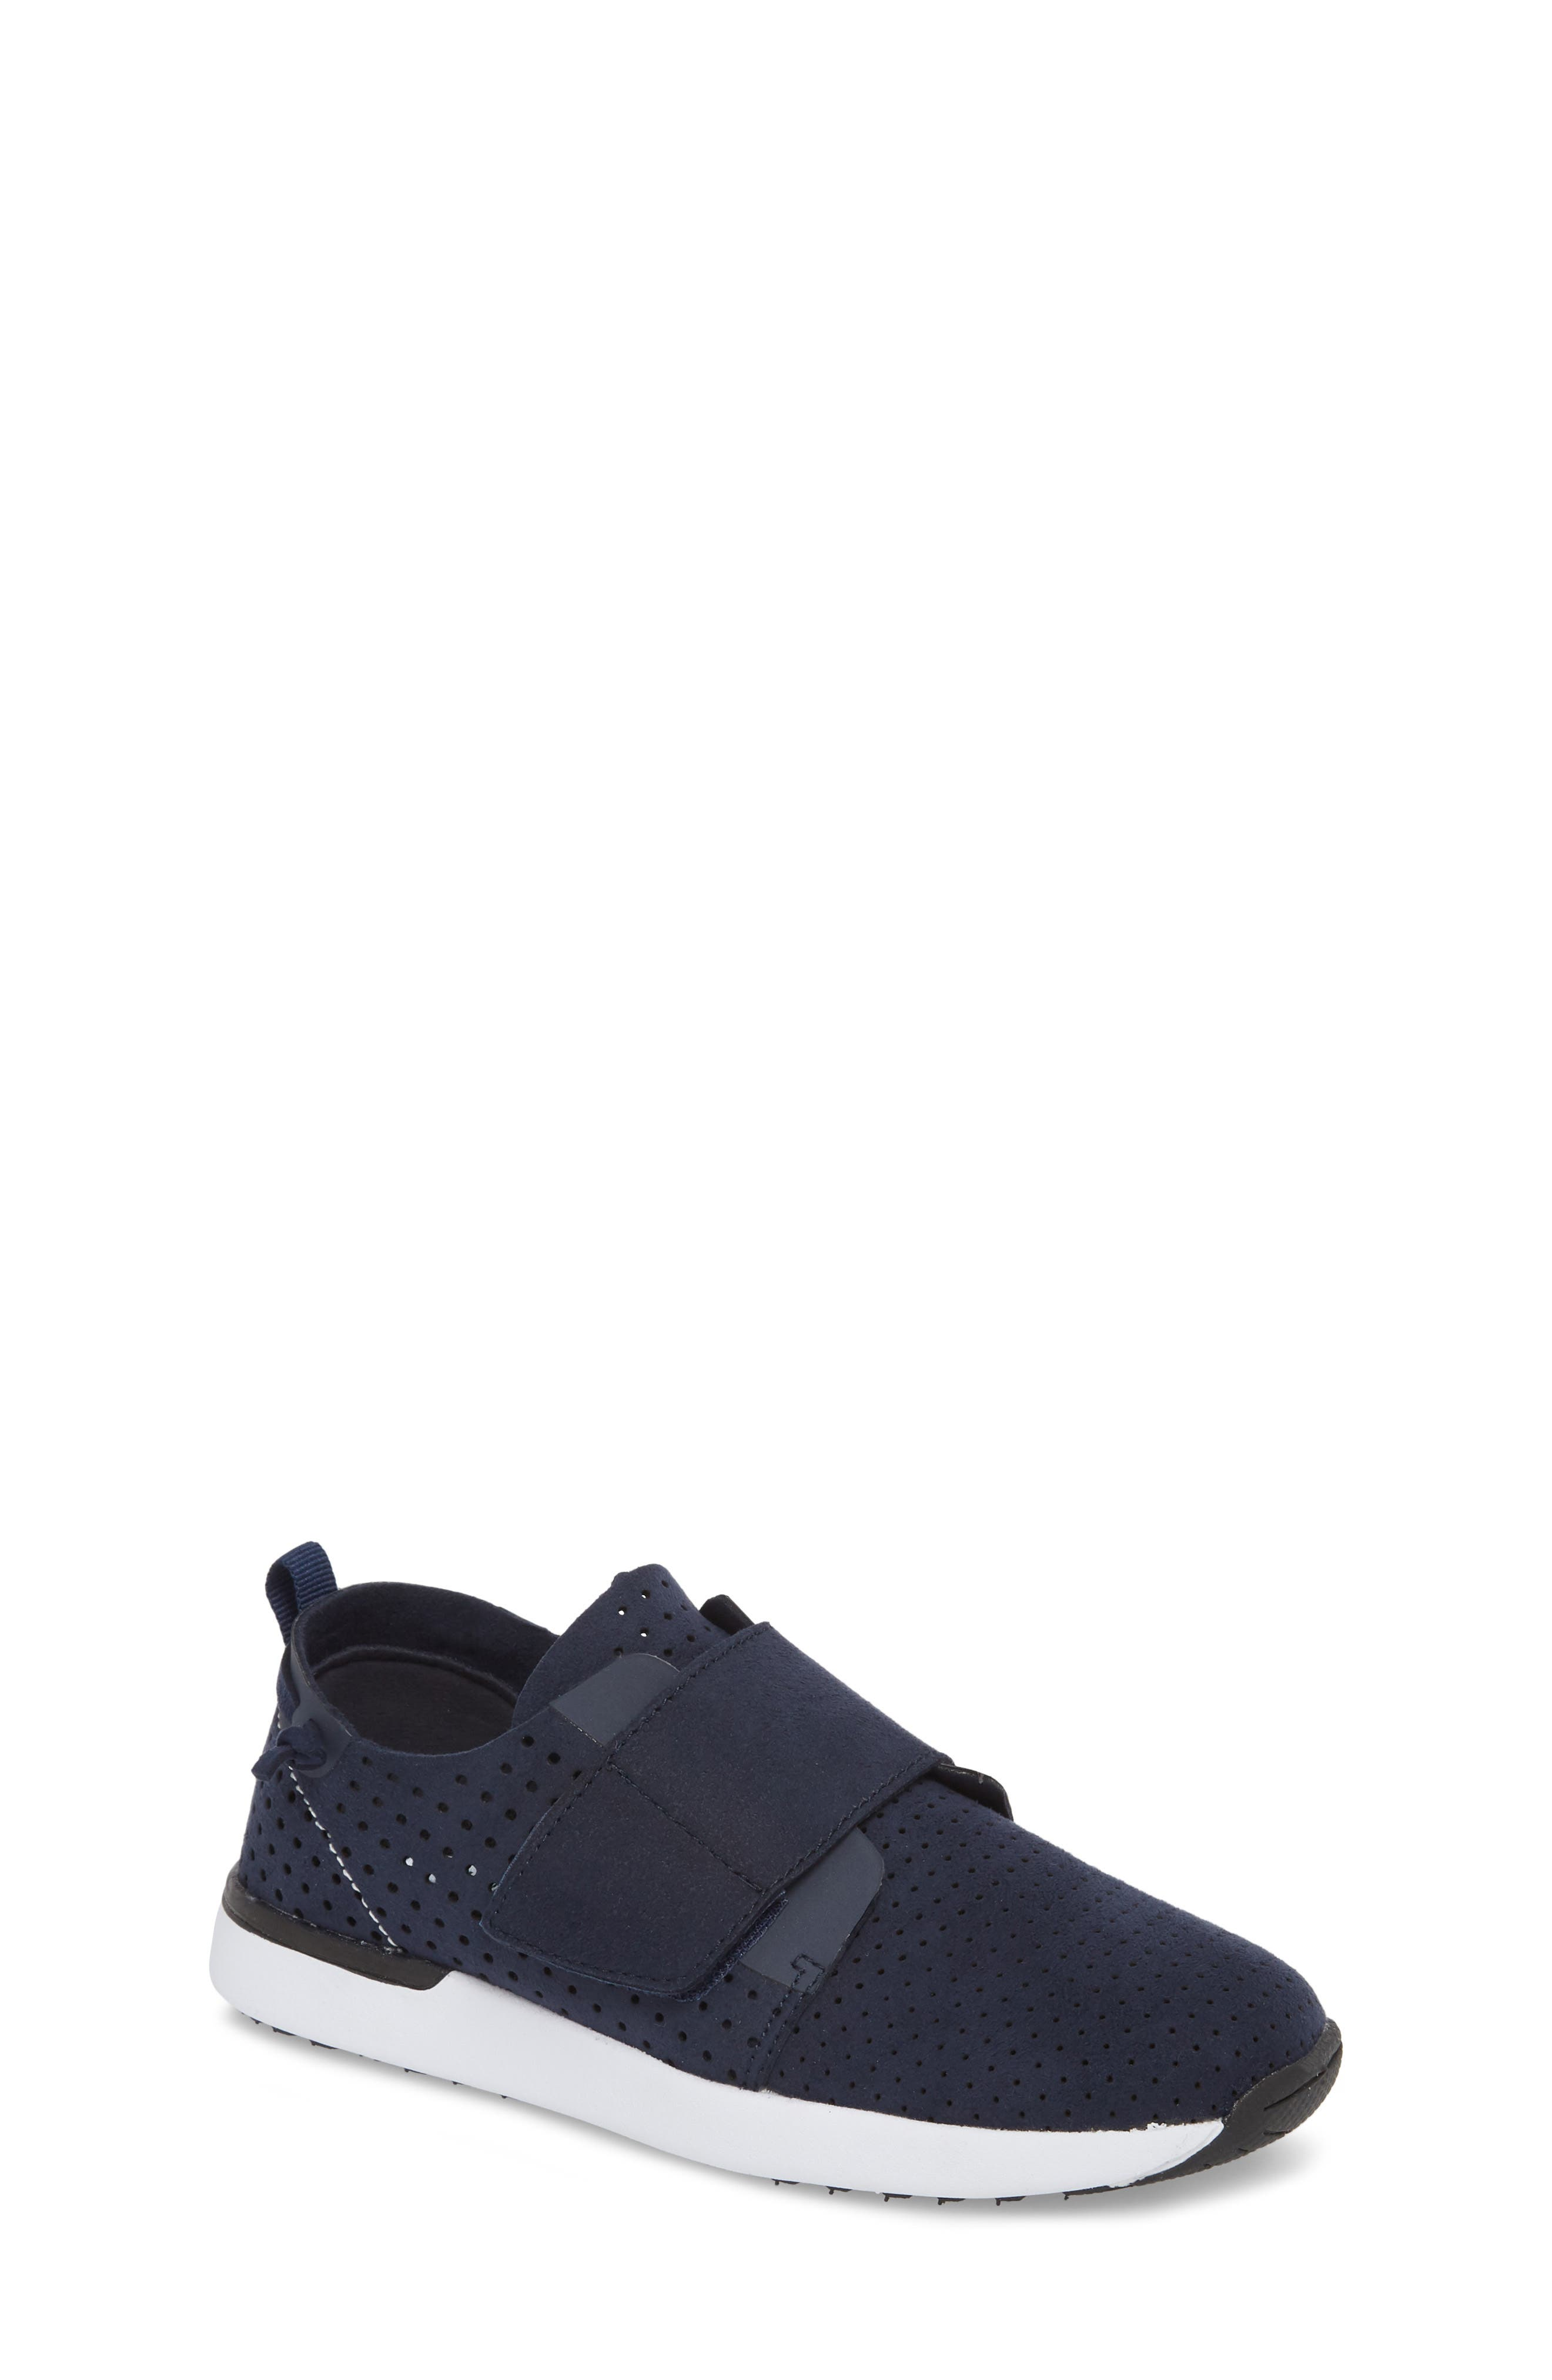 Steve Madden Brixxnv Perforated Sneaker (Little Kid & Big Kid)